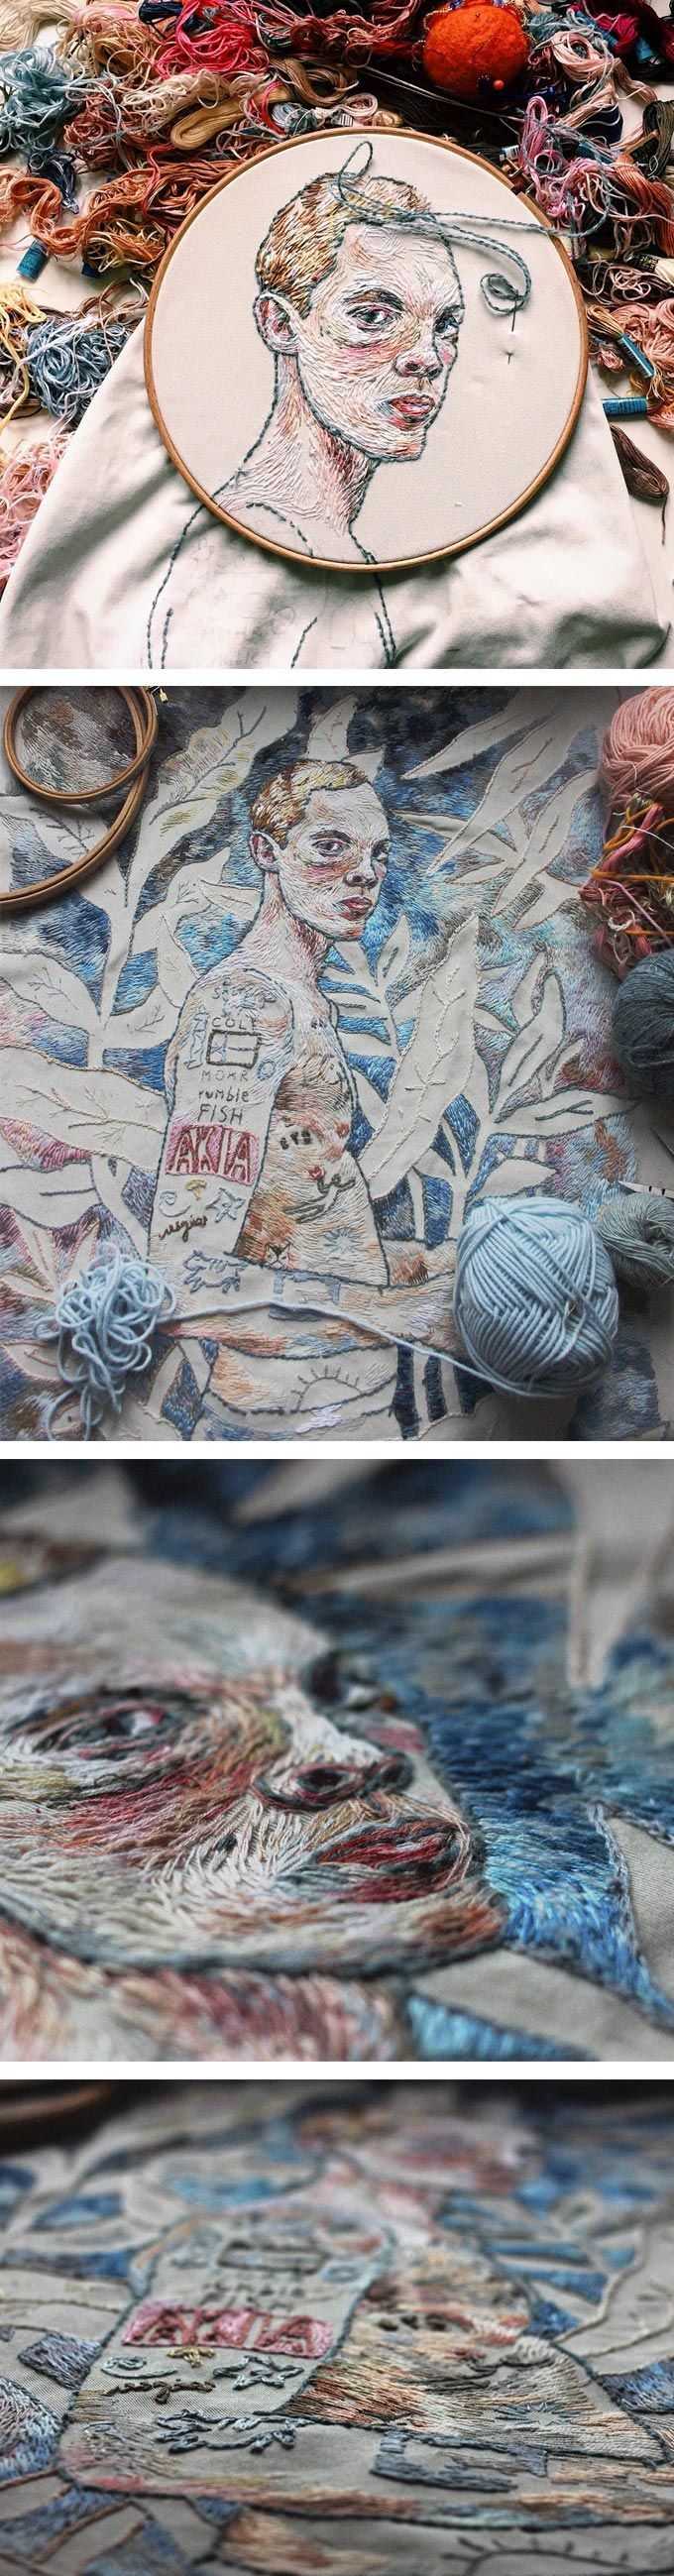 Lisa Smirnova's Embroidered Portrait in an Impressionist Style